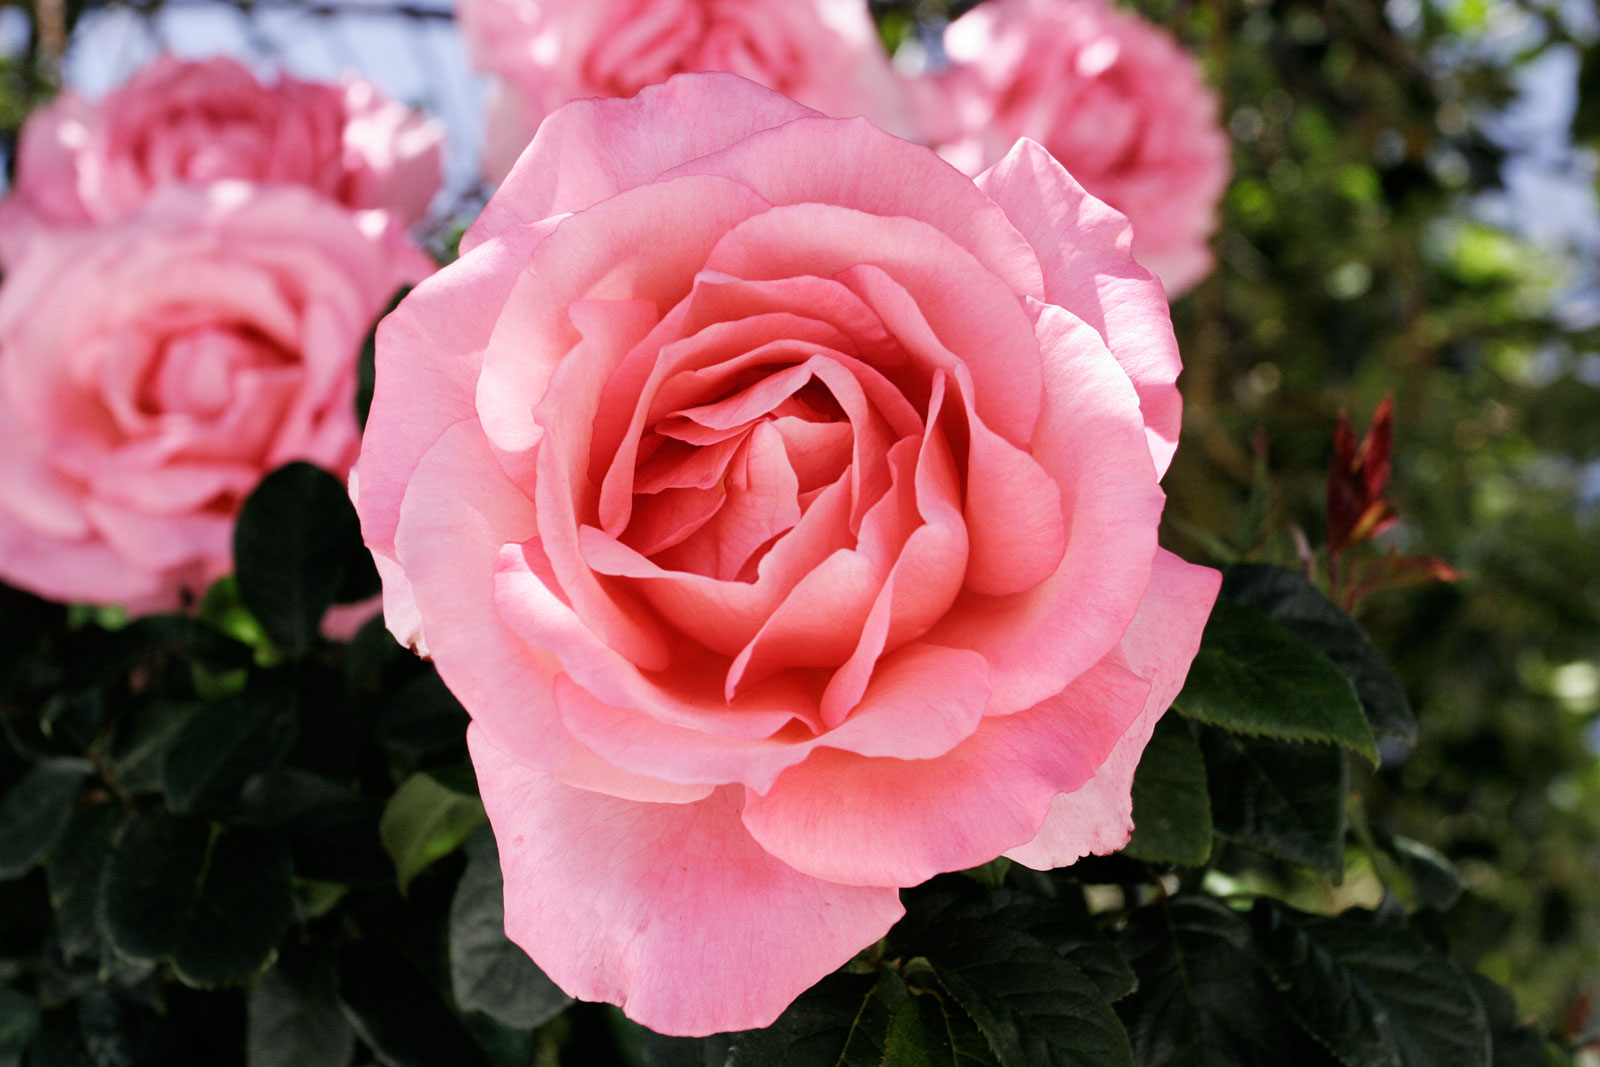 http://upload.wikimedia.org/wikipedia/commons/5/59/Pink_rose_cultivar.jpg